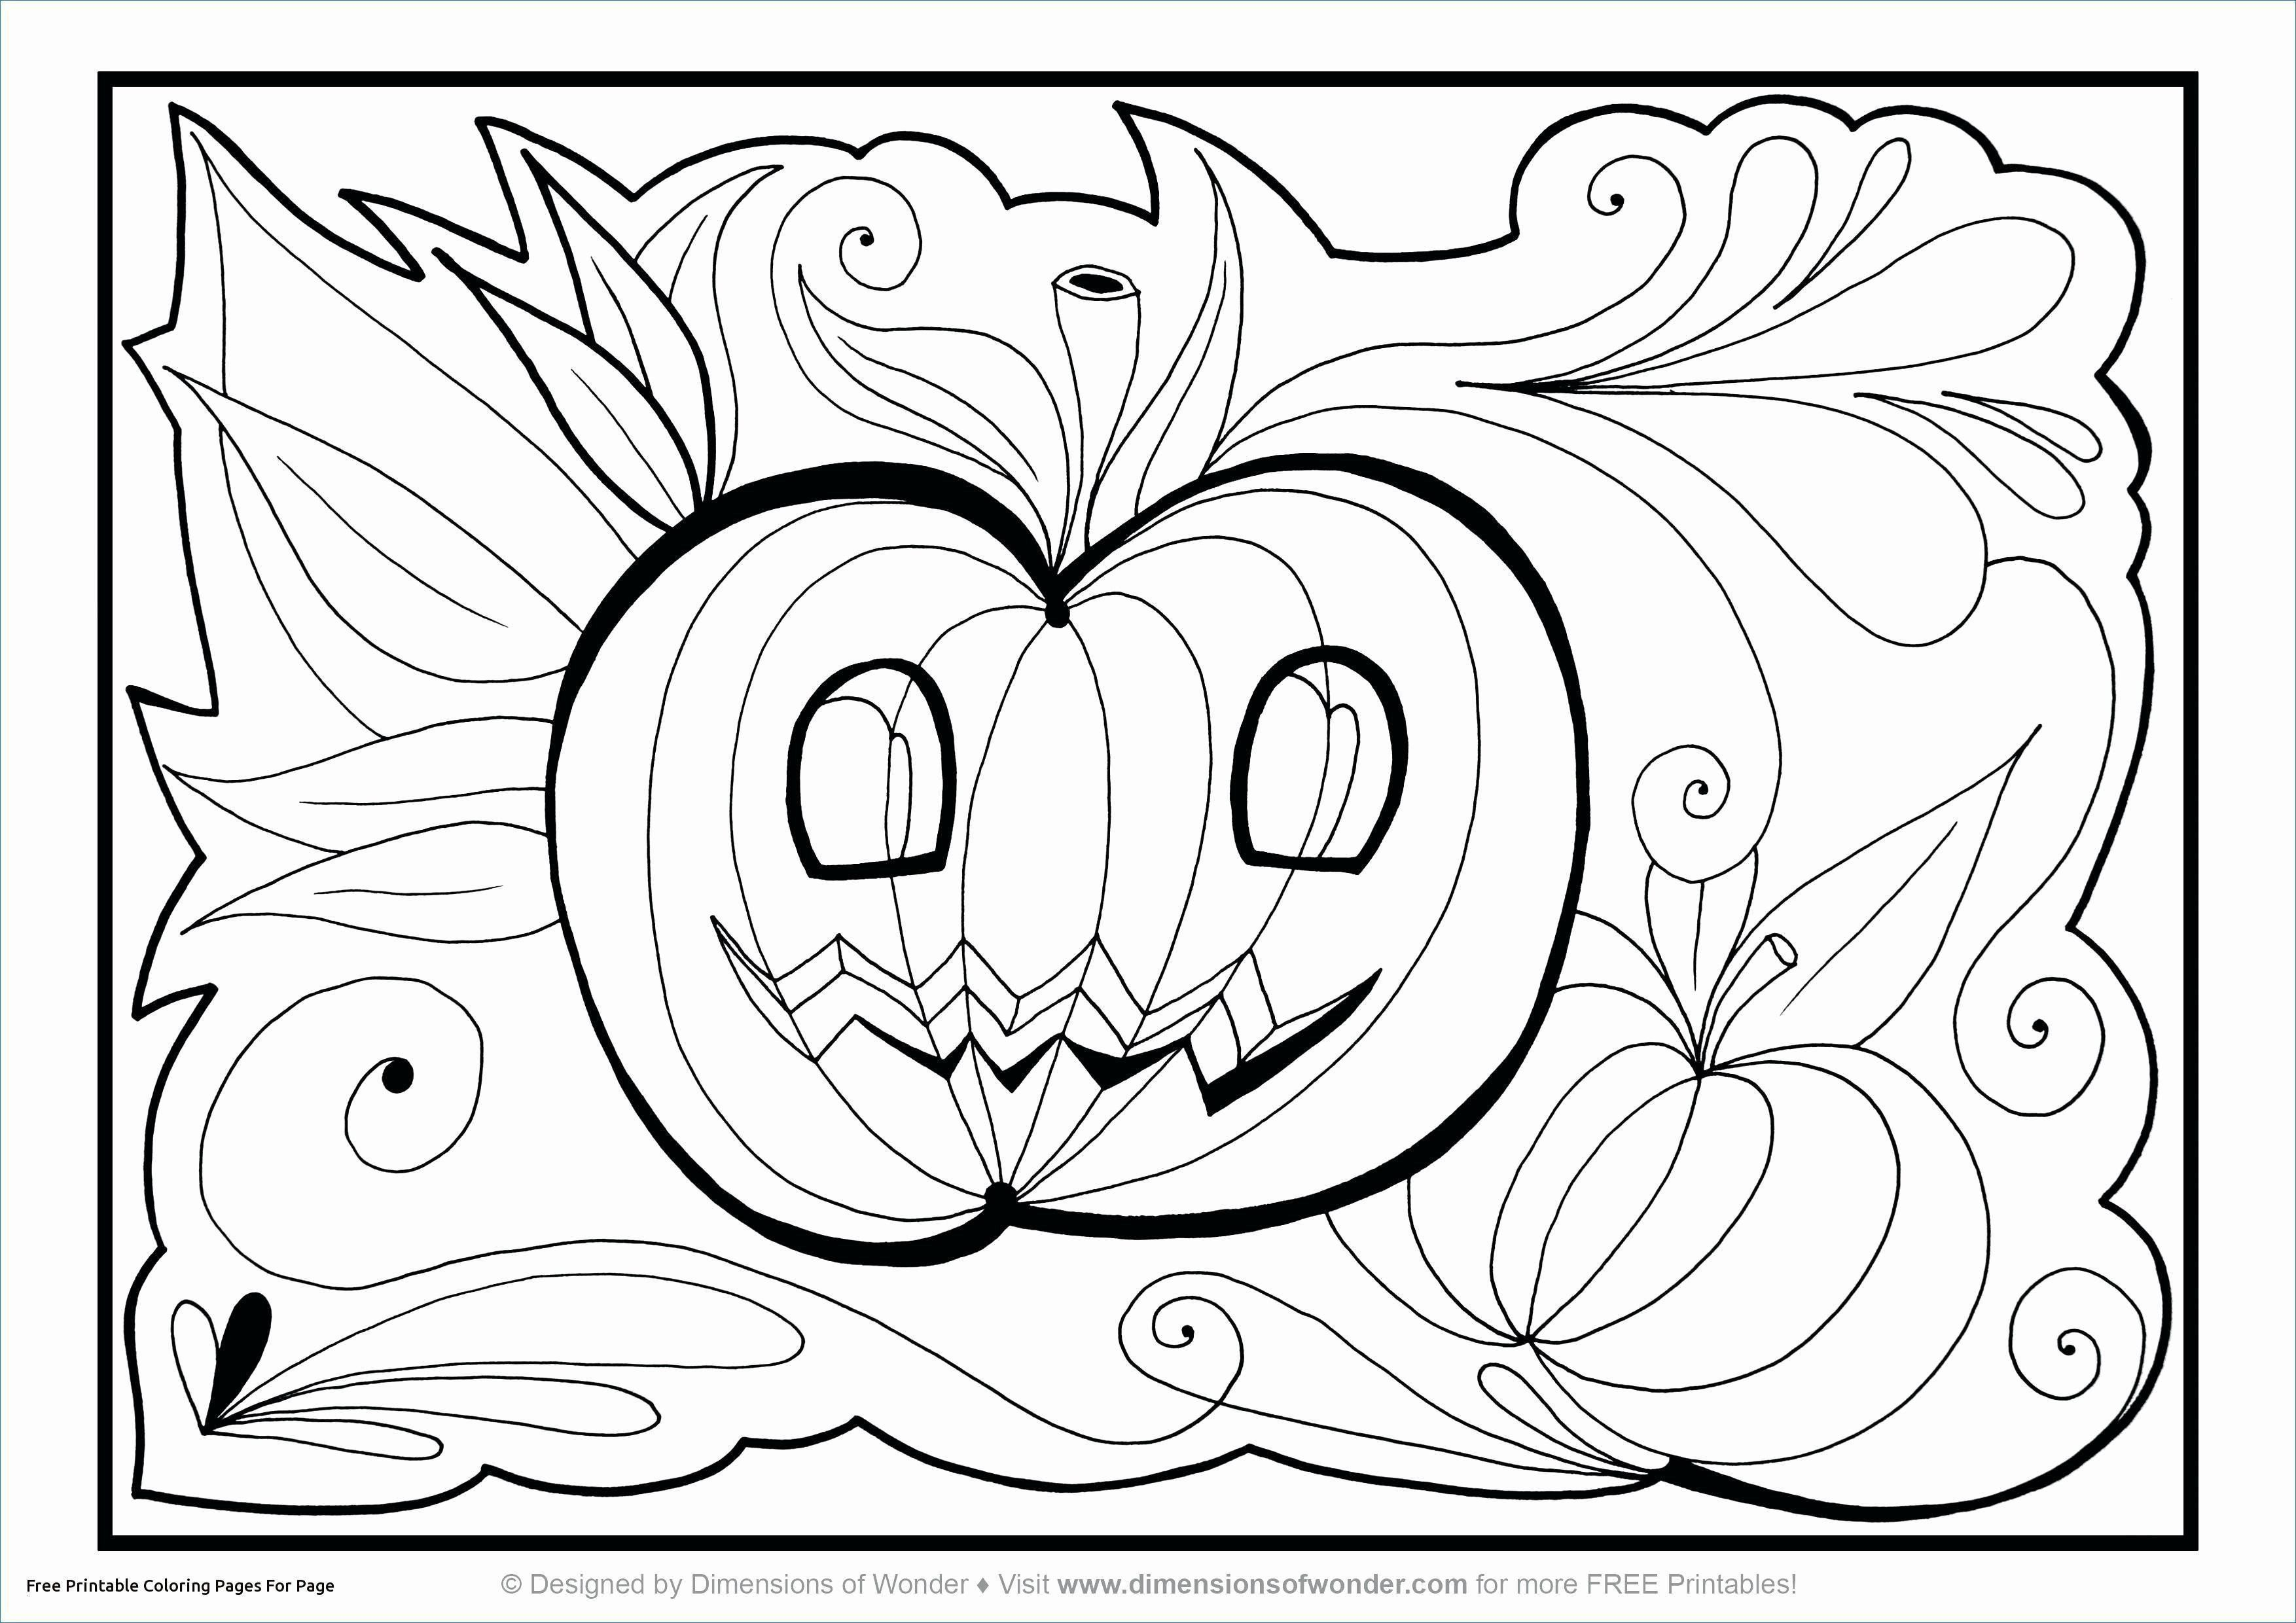 Disney Halloween Coloring Pages Awesome Inspirational Disney Halloween Coloring Pages Printabl In 2020 Fall Coloring Pages Disney Coloring Pages Pumpkin Coloring Pages